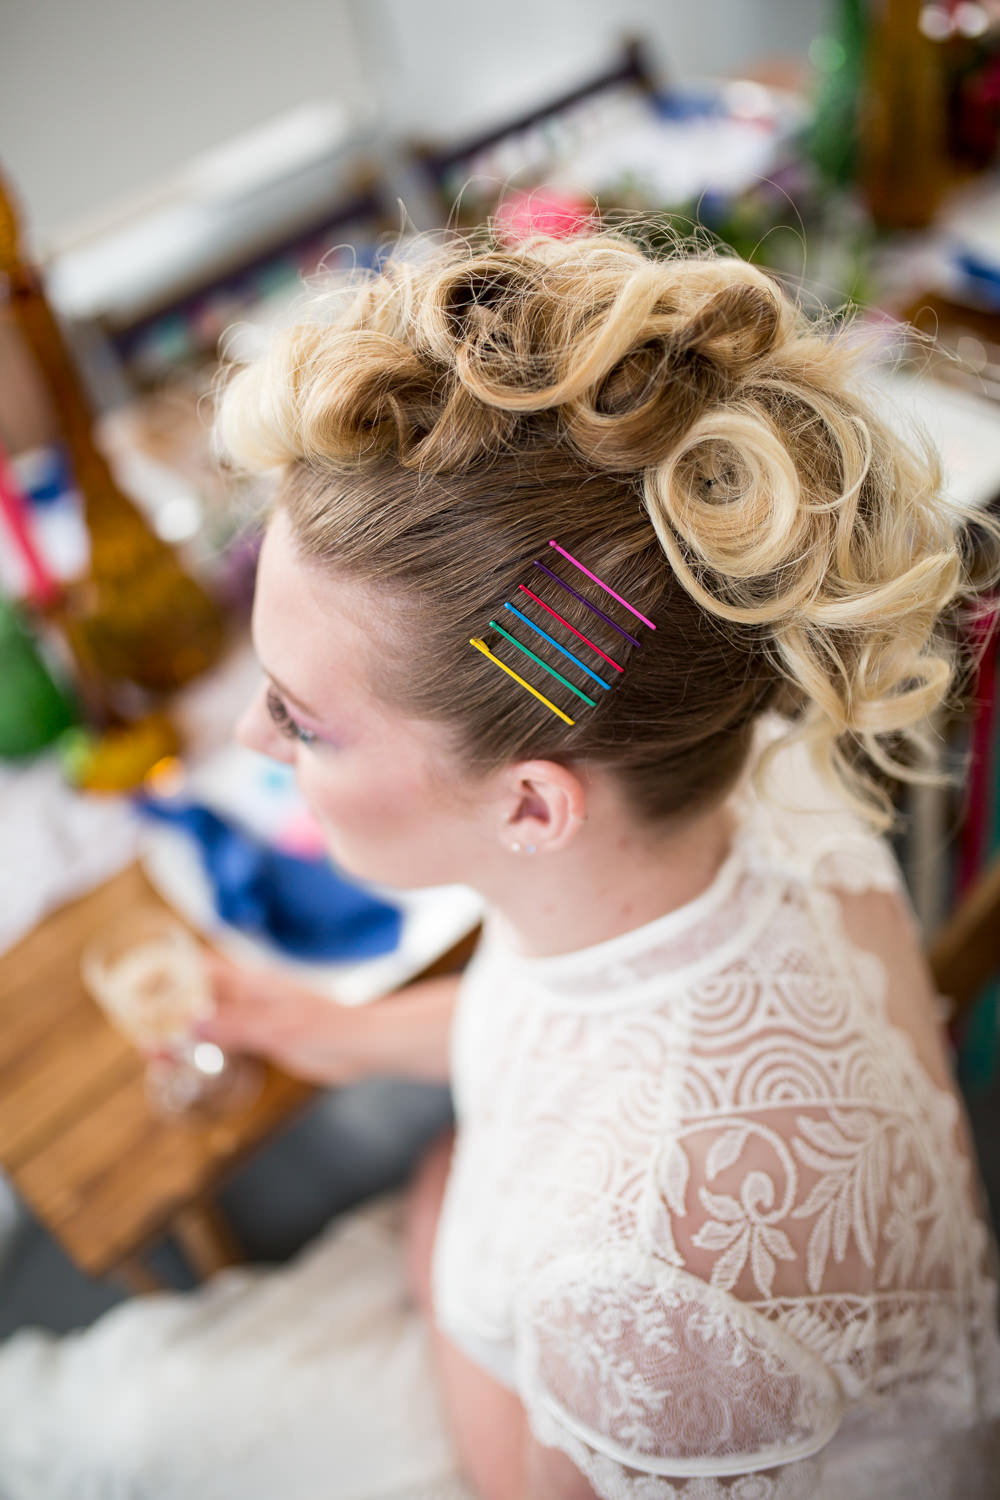 Hair Style Up Do Mohawk Bride Bridal Hair Pins Colourful Balloons Wedding Ideas Florence Berry Photography